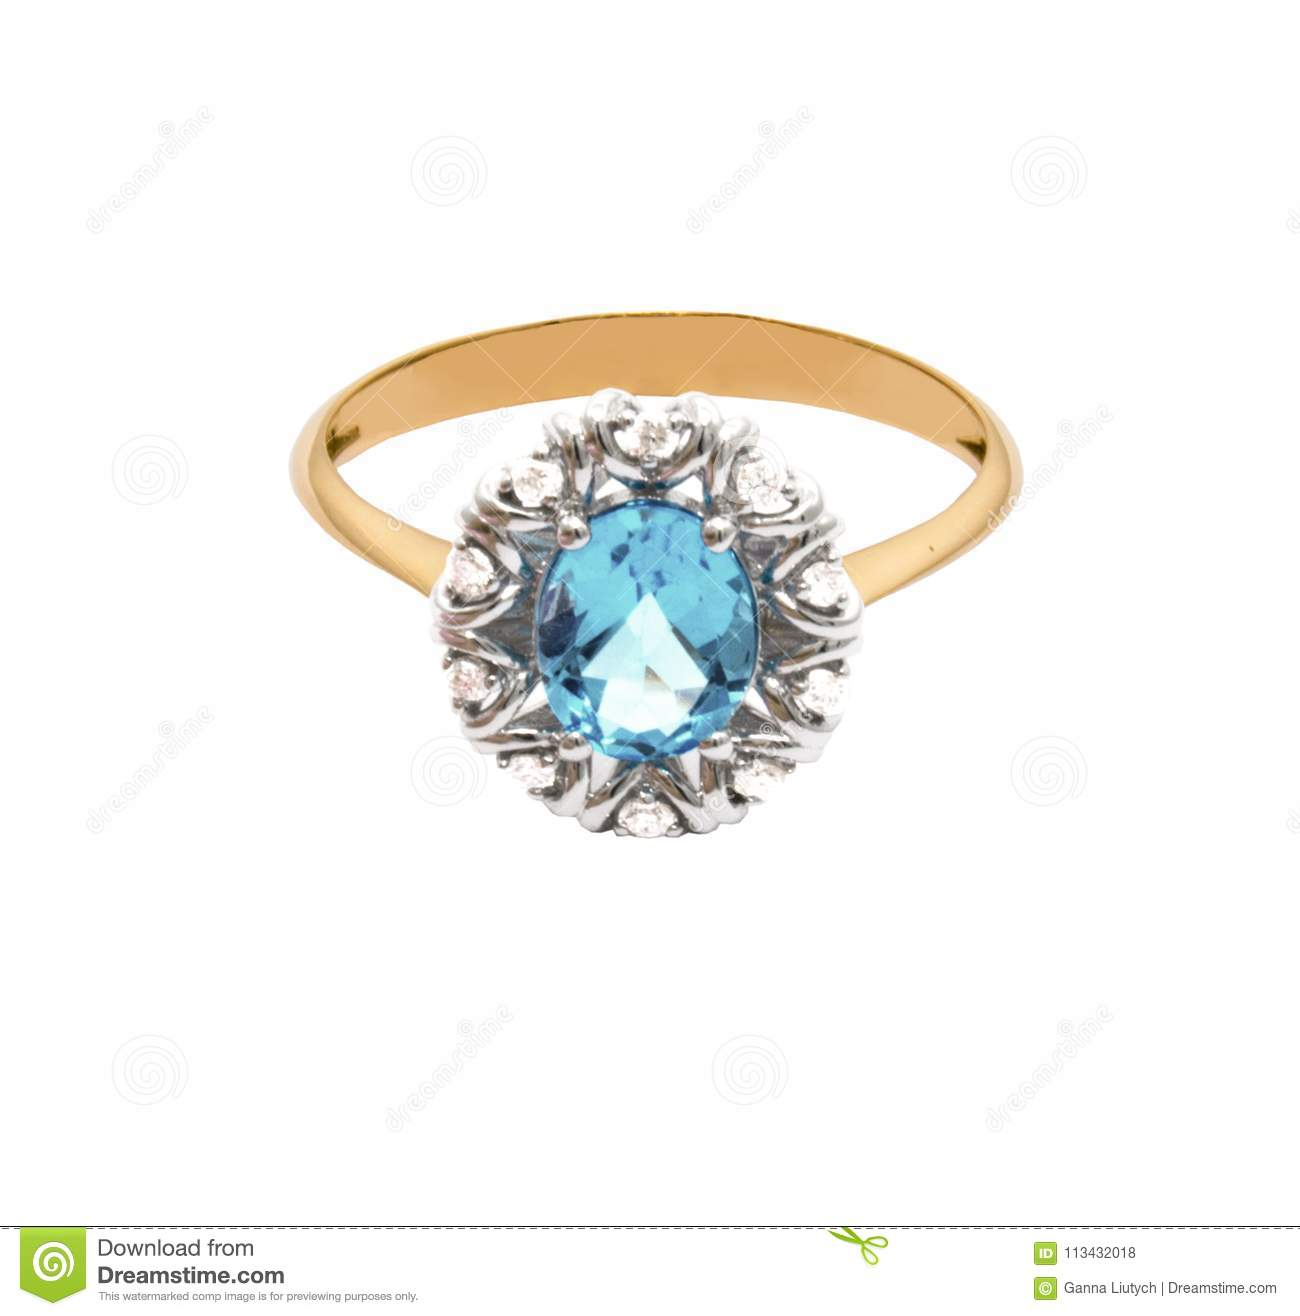 Very beautiful golden ring with topaz and few diamonds